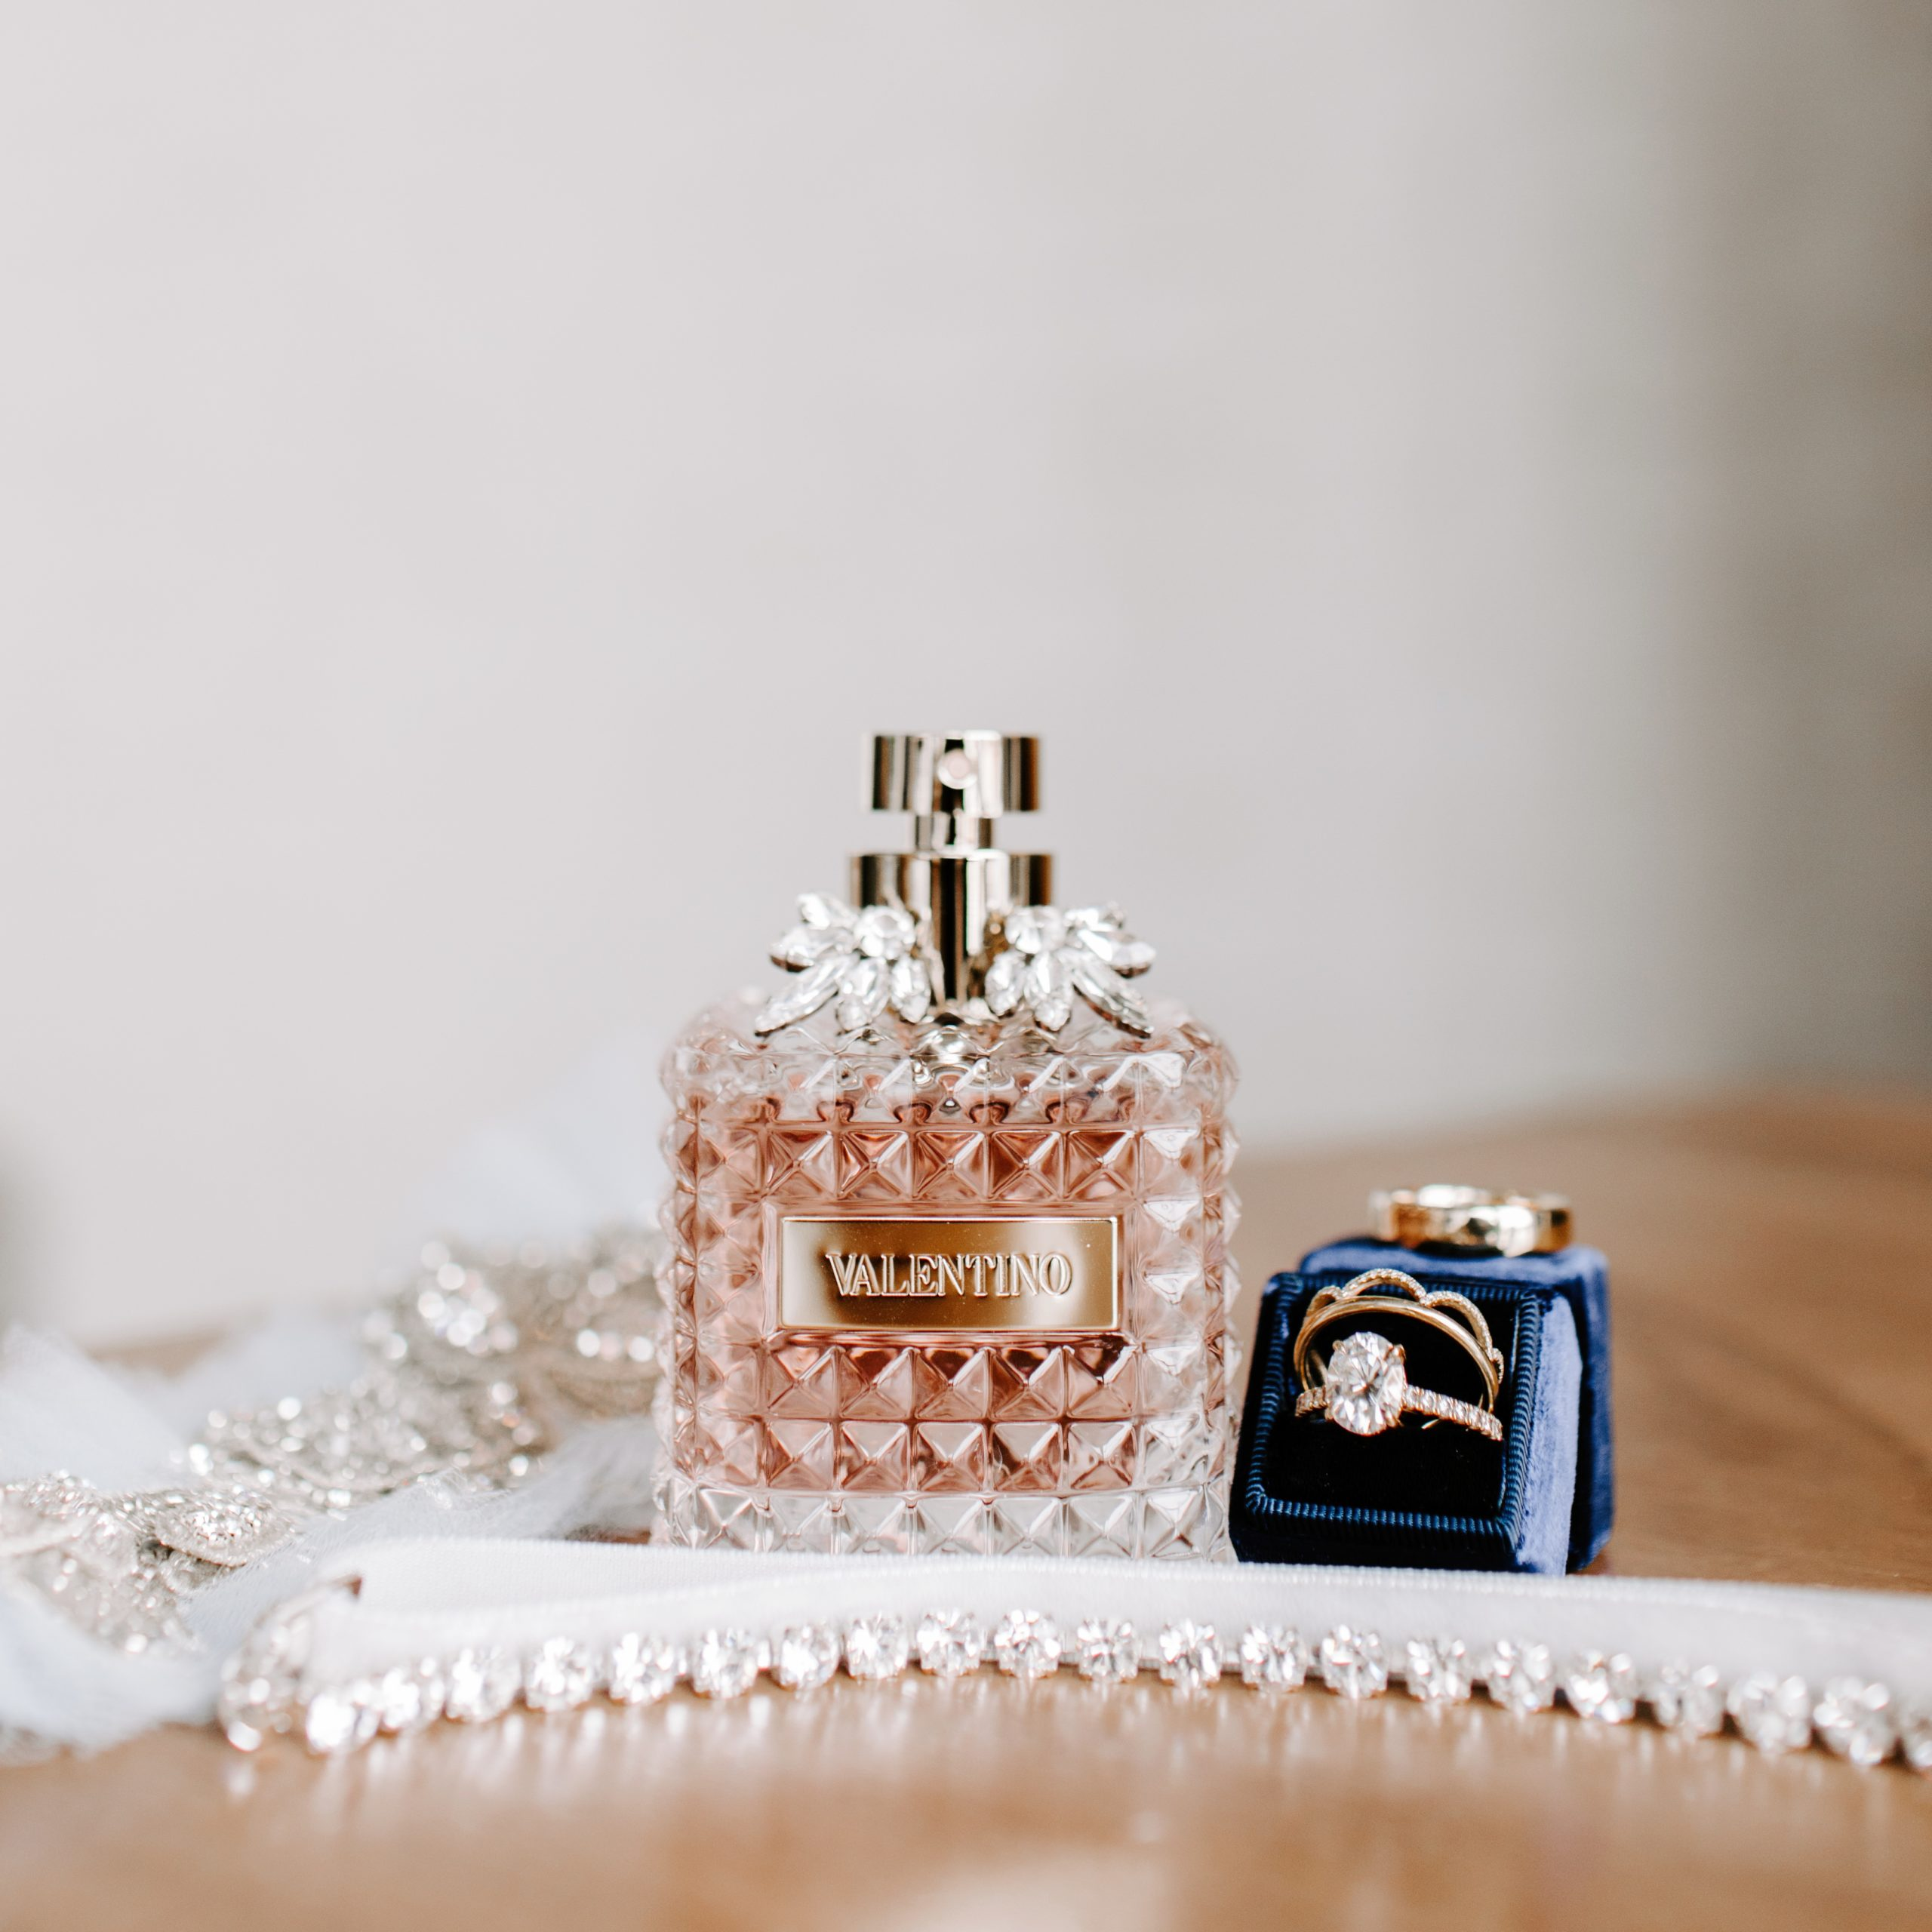 Bridal perfume and jewelry details